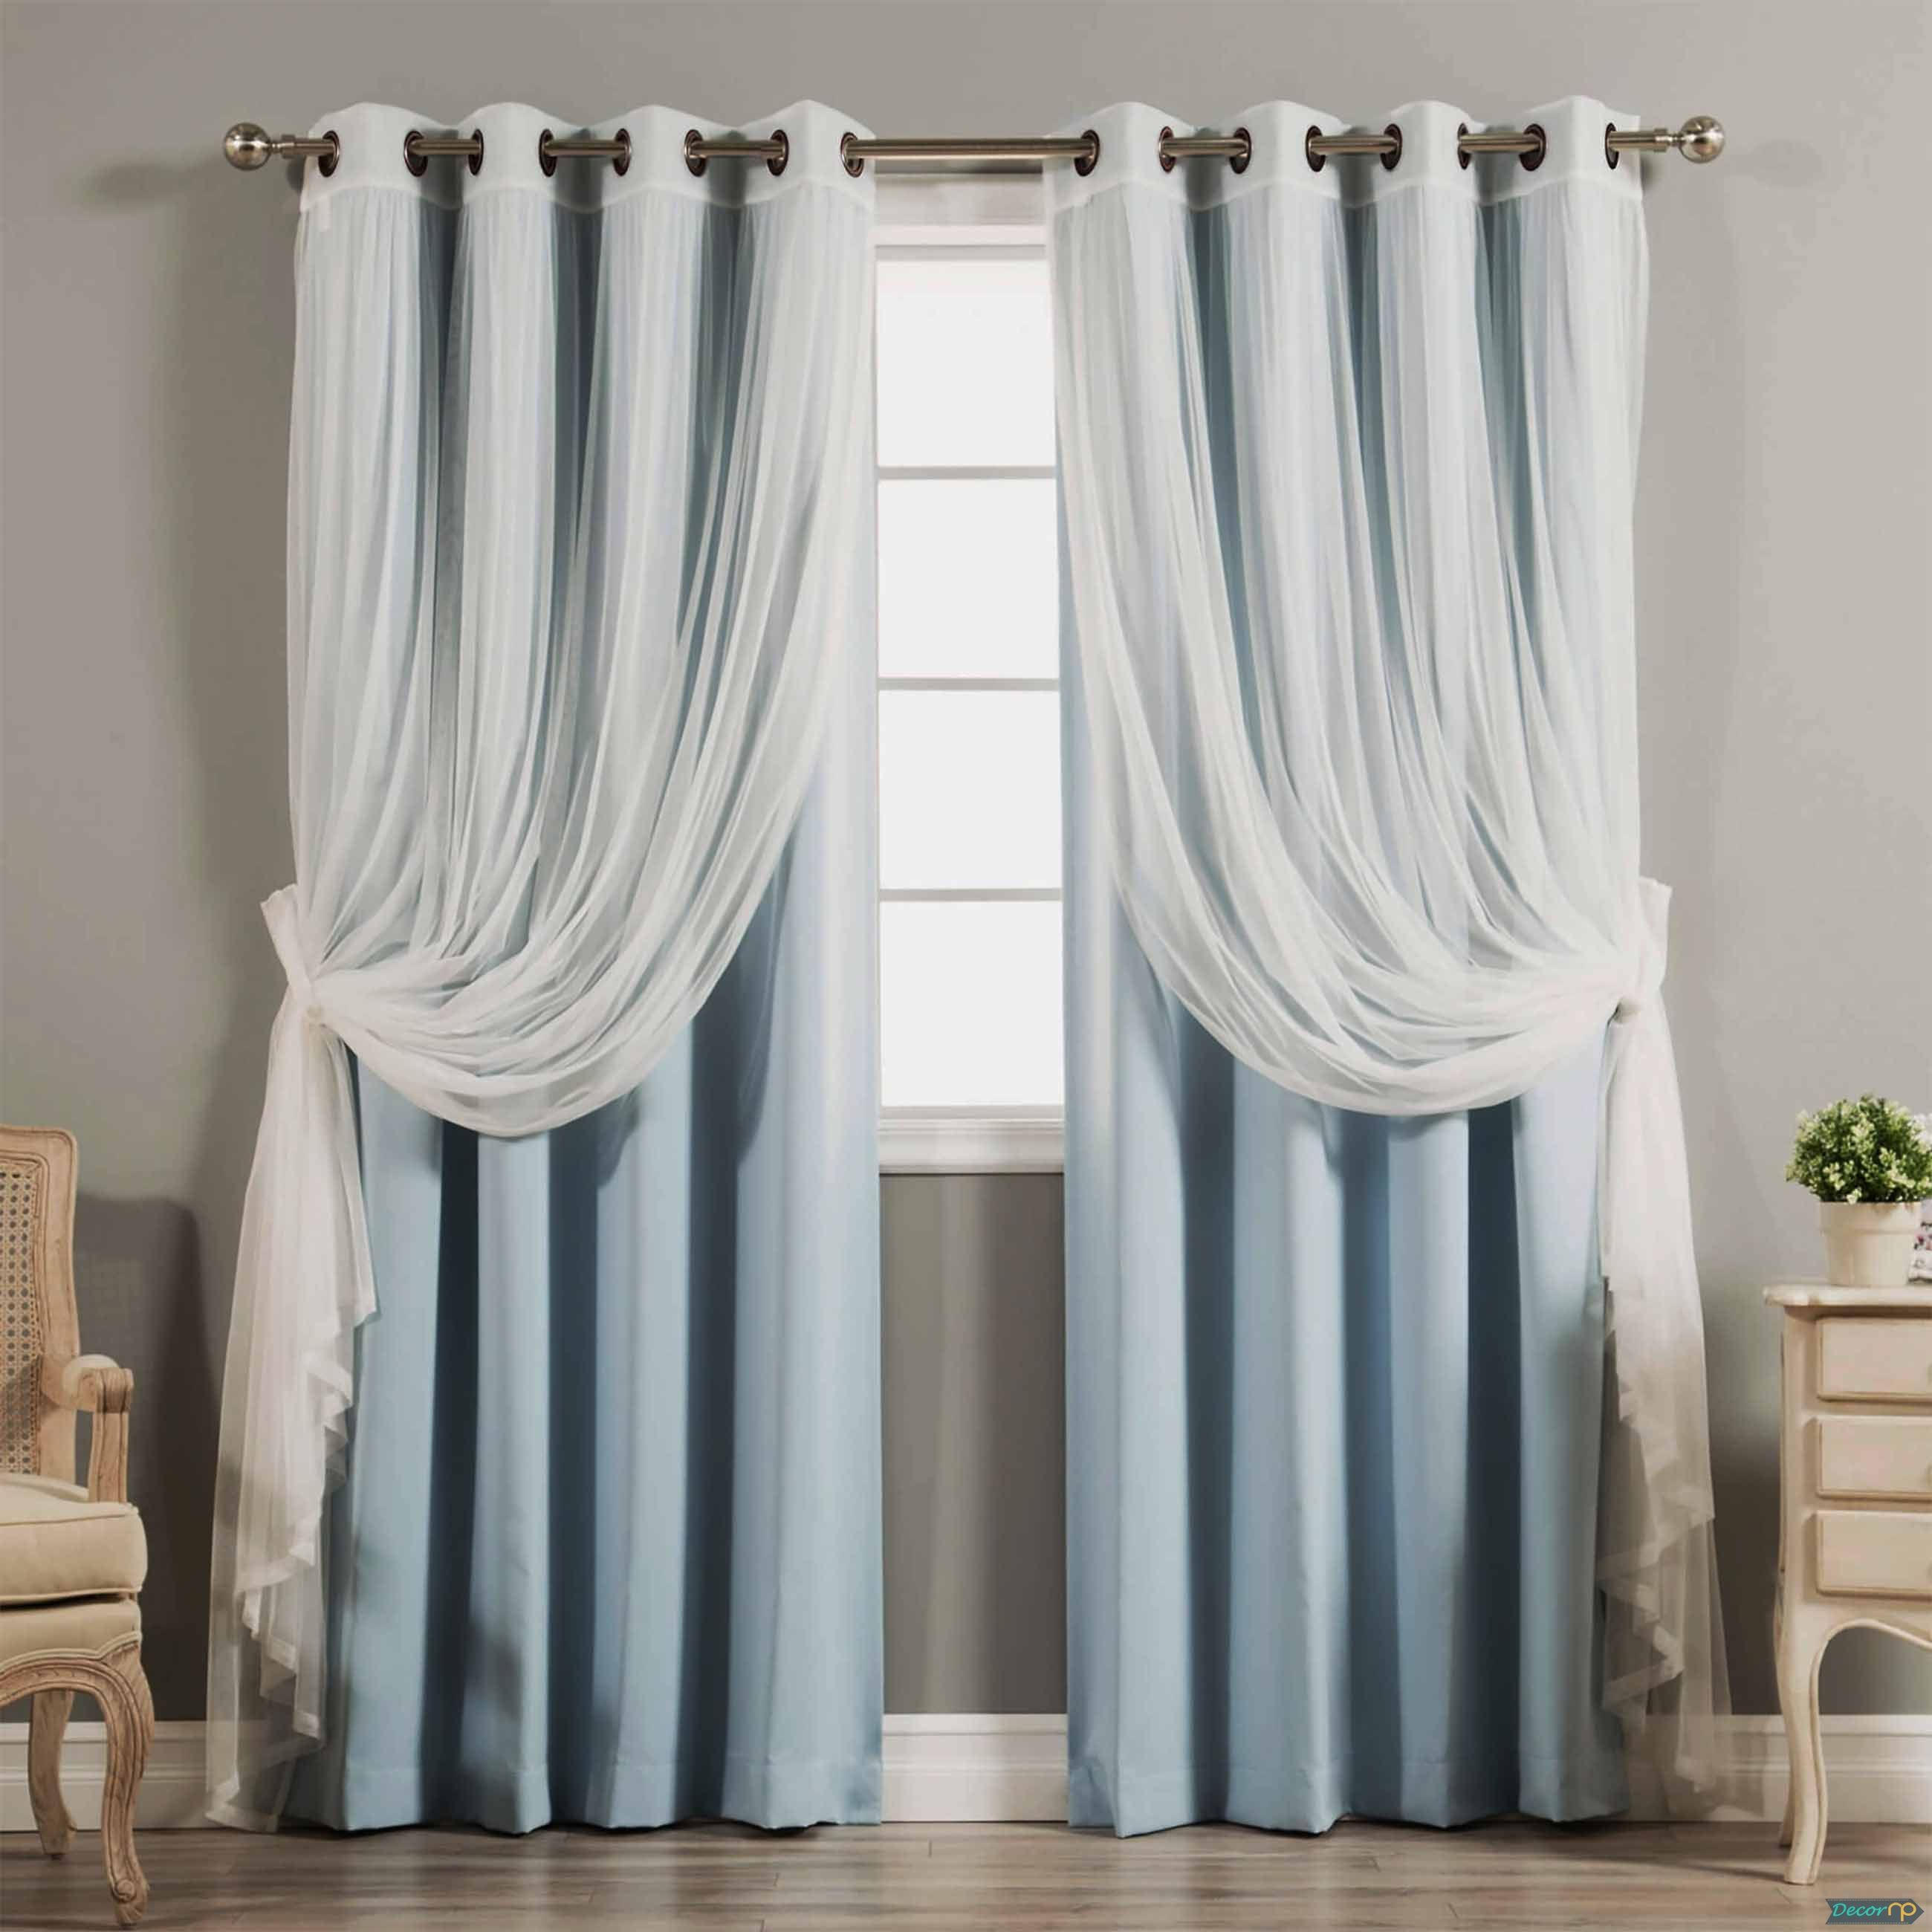 Breathtaking Living Room Curtains Models Images - Exterior ideas 3D ...